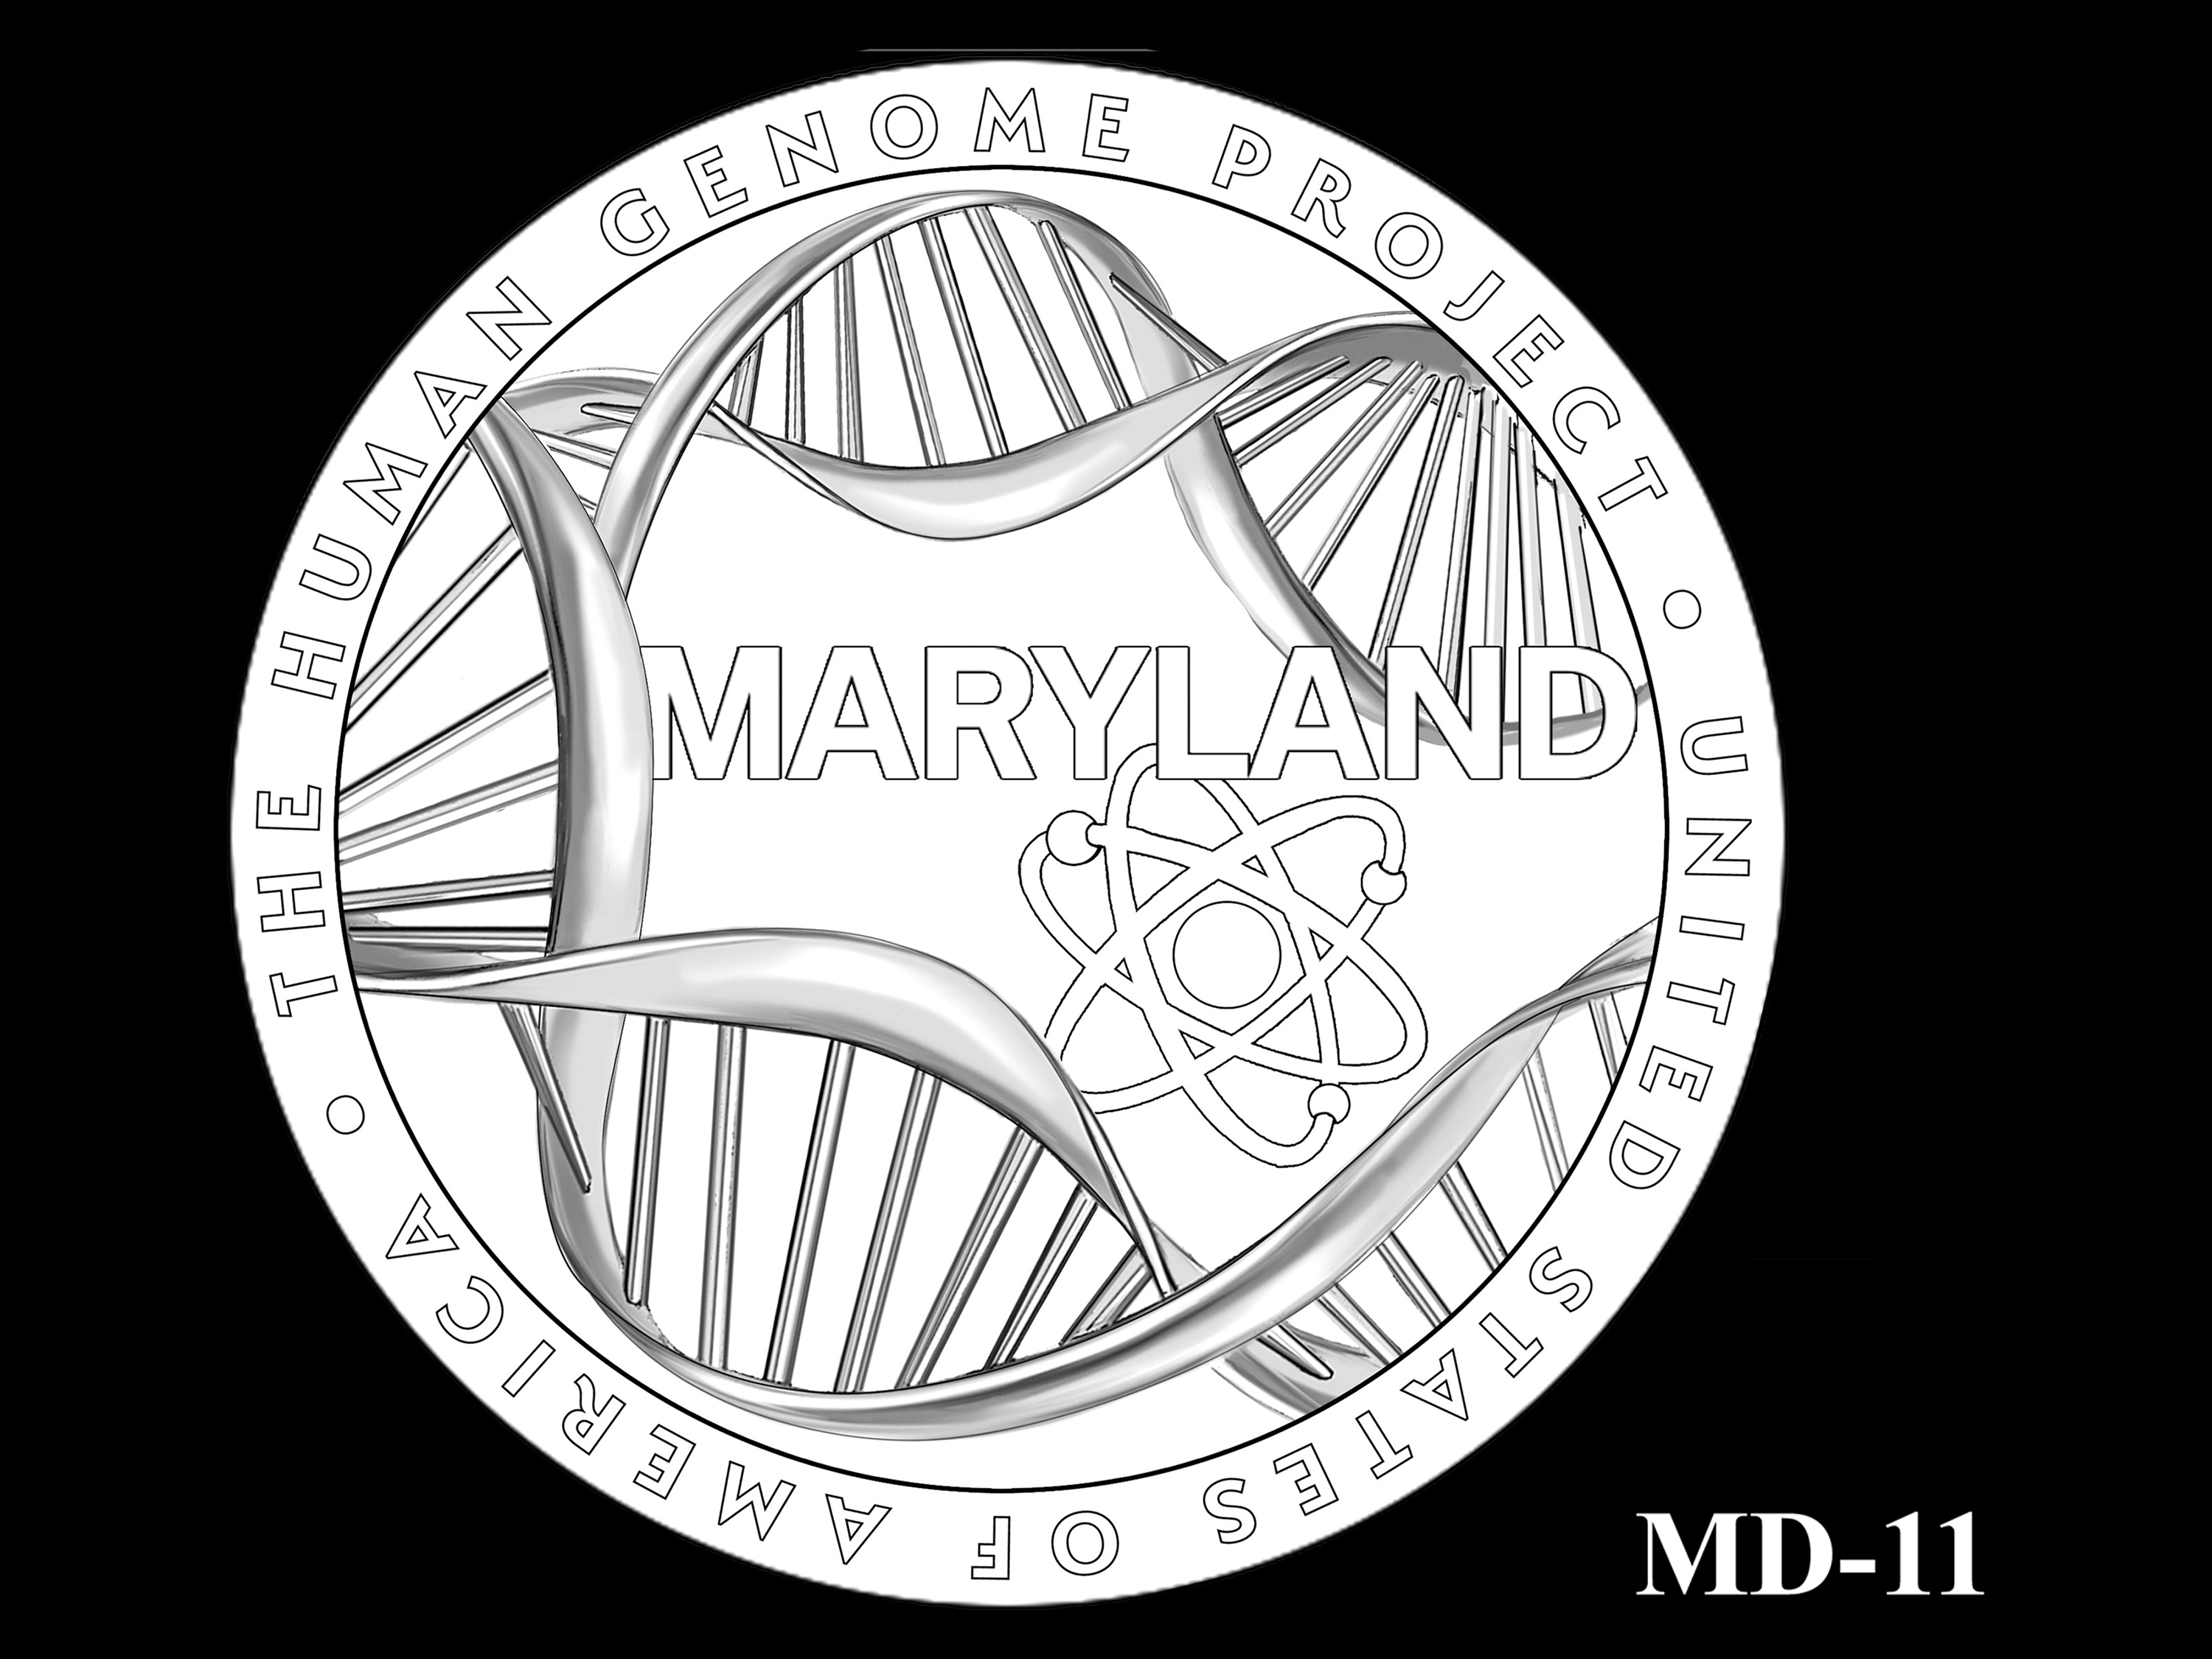 MD-11 -- 2020 American Innovation $1 Coin - Maryland